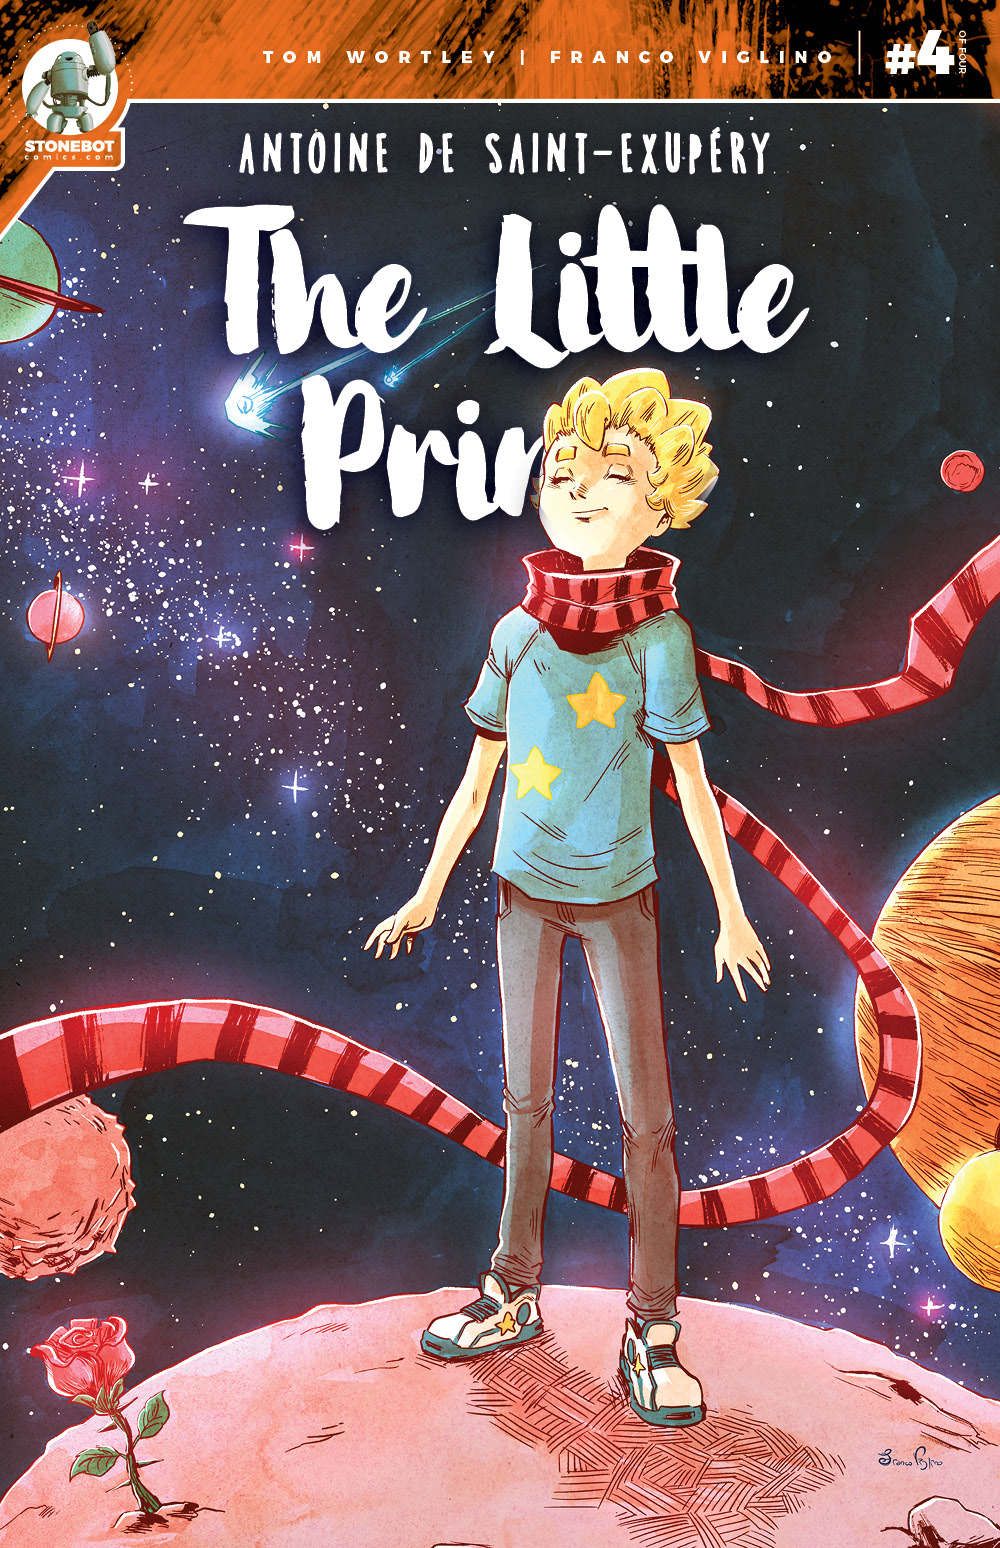 THE LITTLE PRINCE Chapter #4